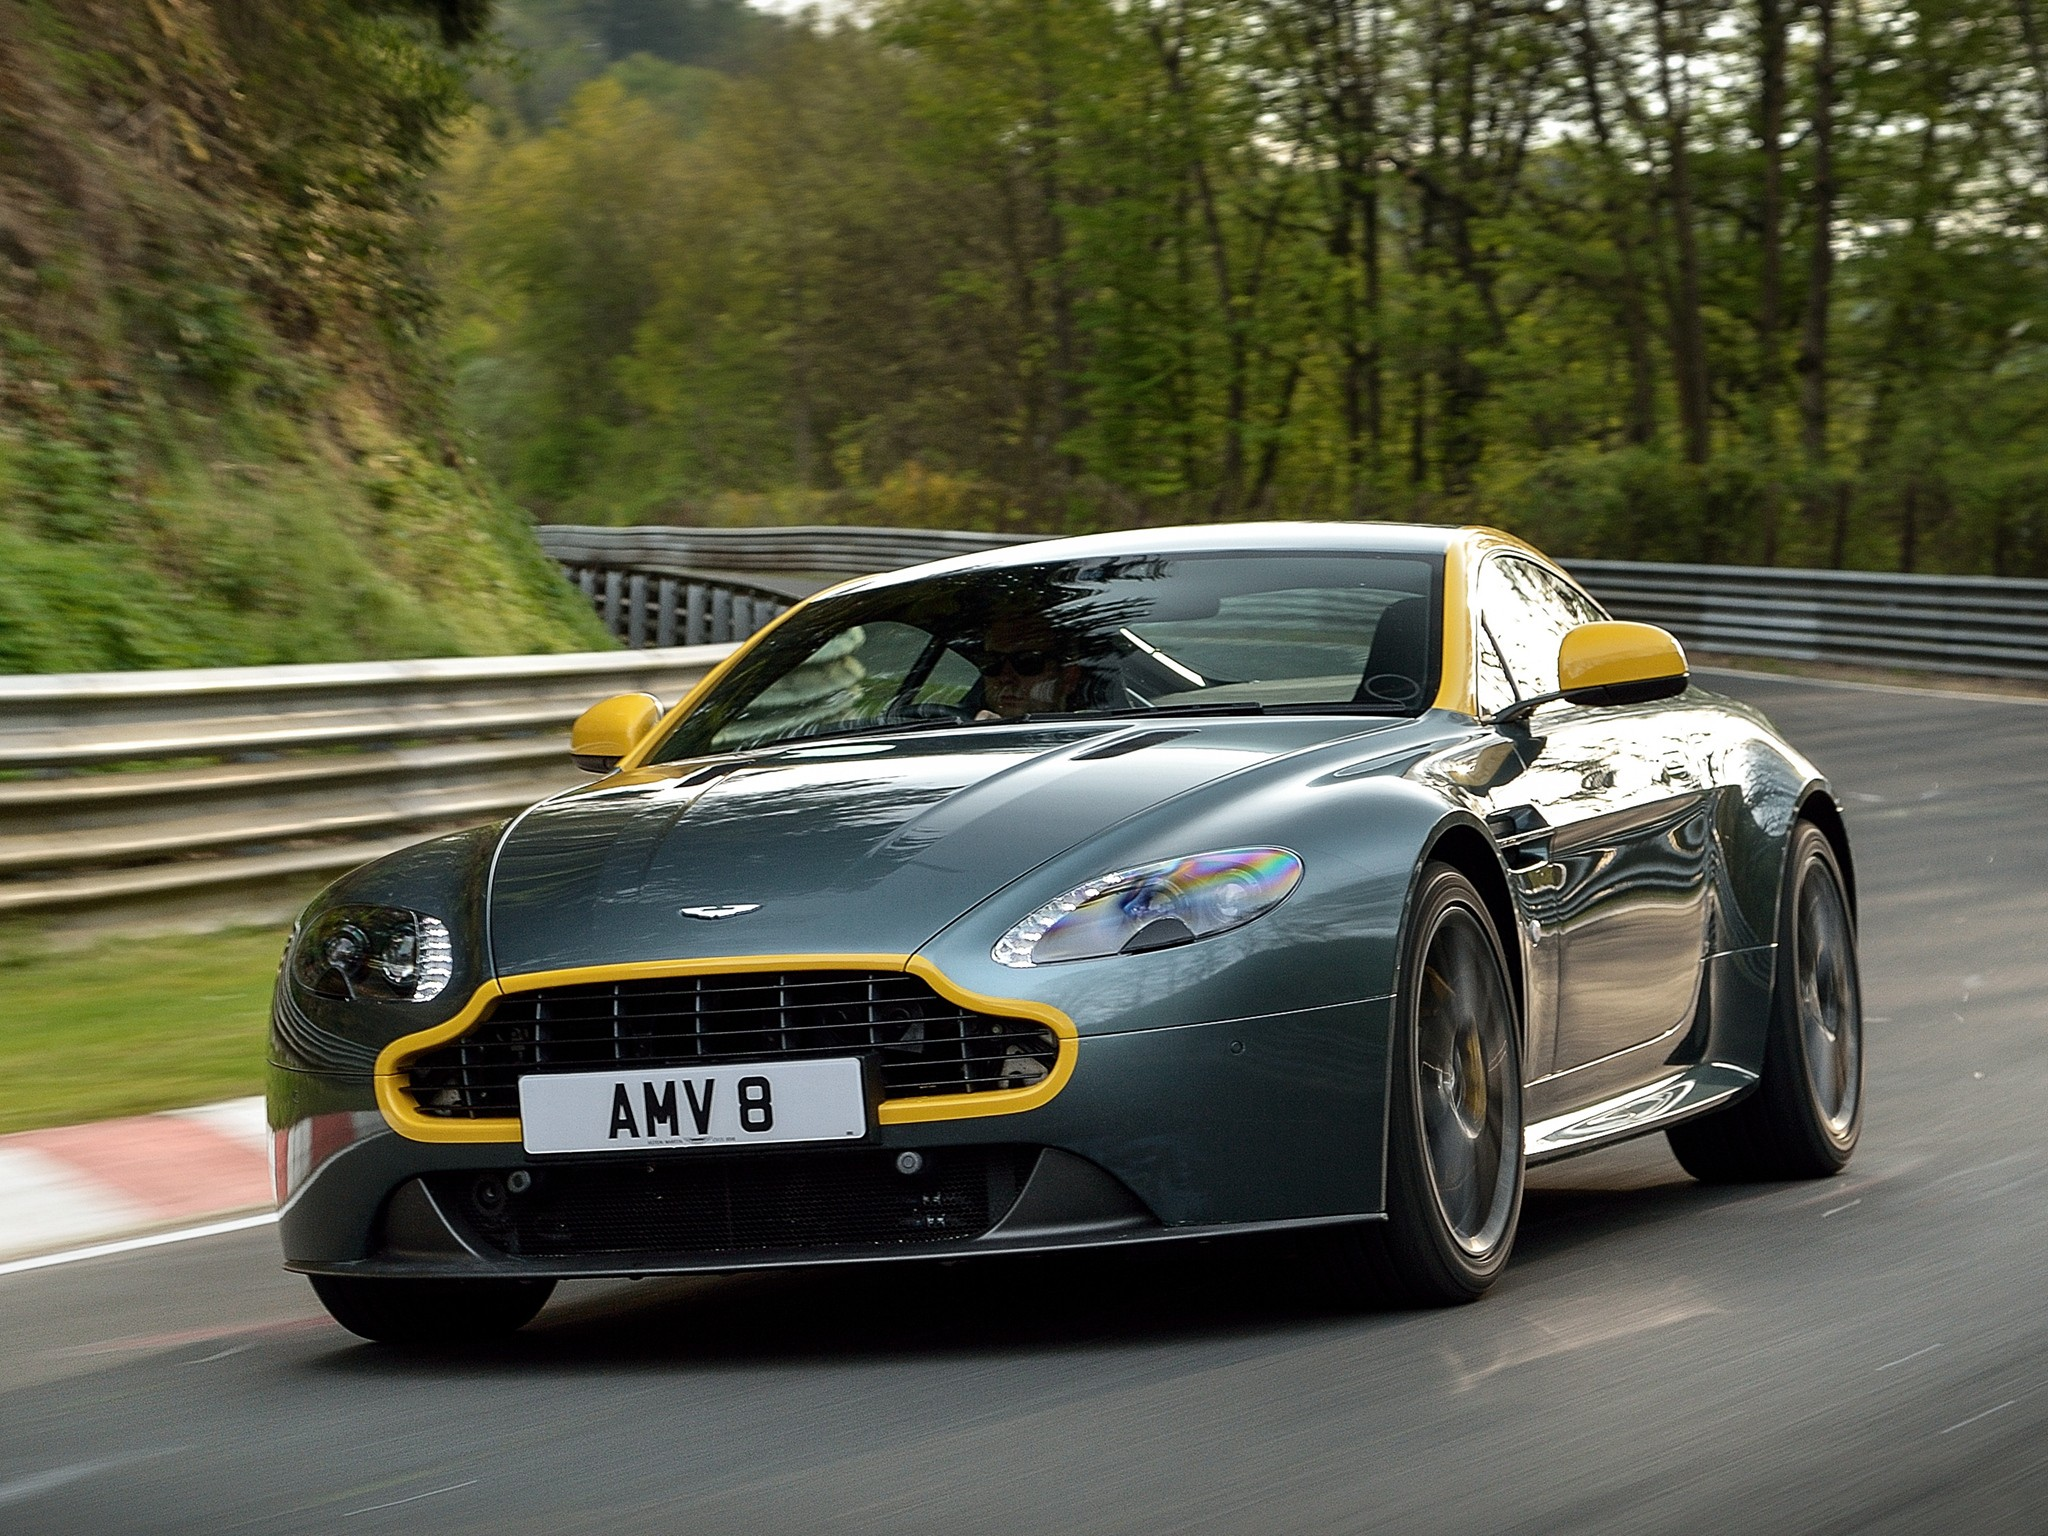 aston martin v8 vantage n420 2010 2011 2012 2013 2014. Cars Review. Best American Auto & Cars Review